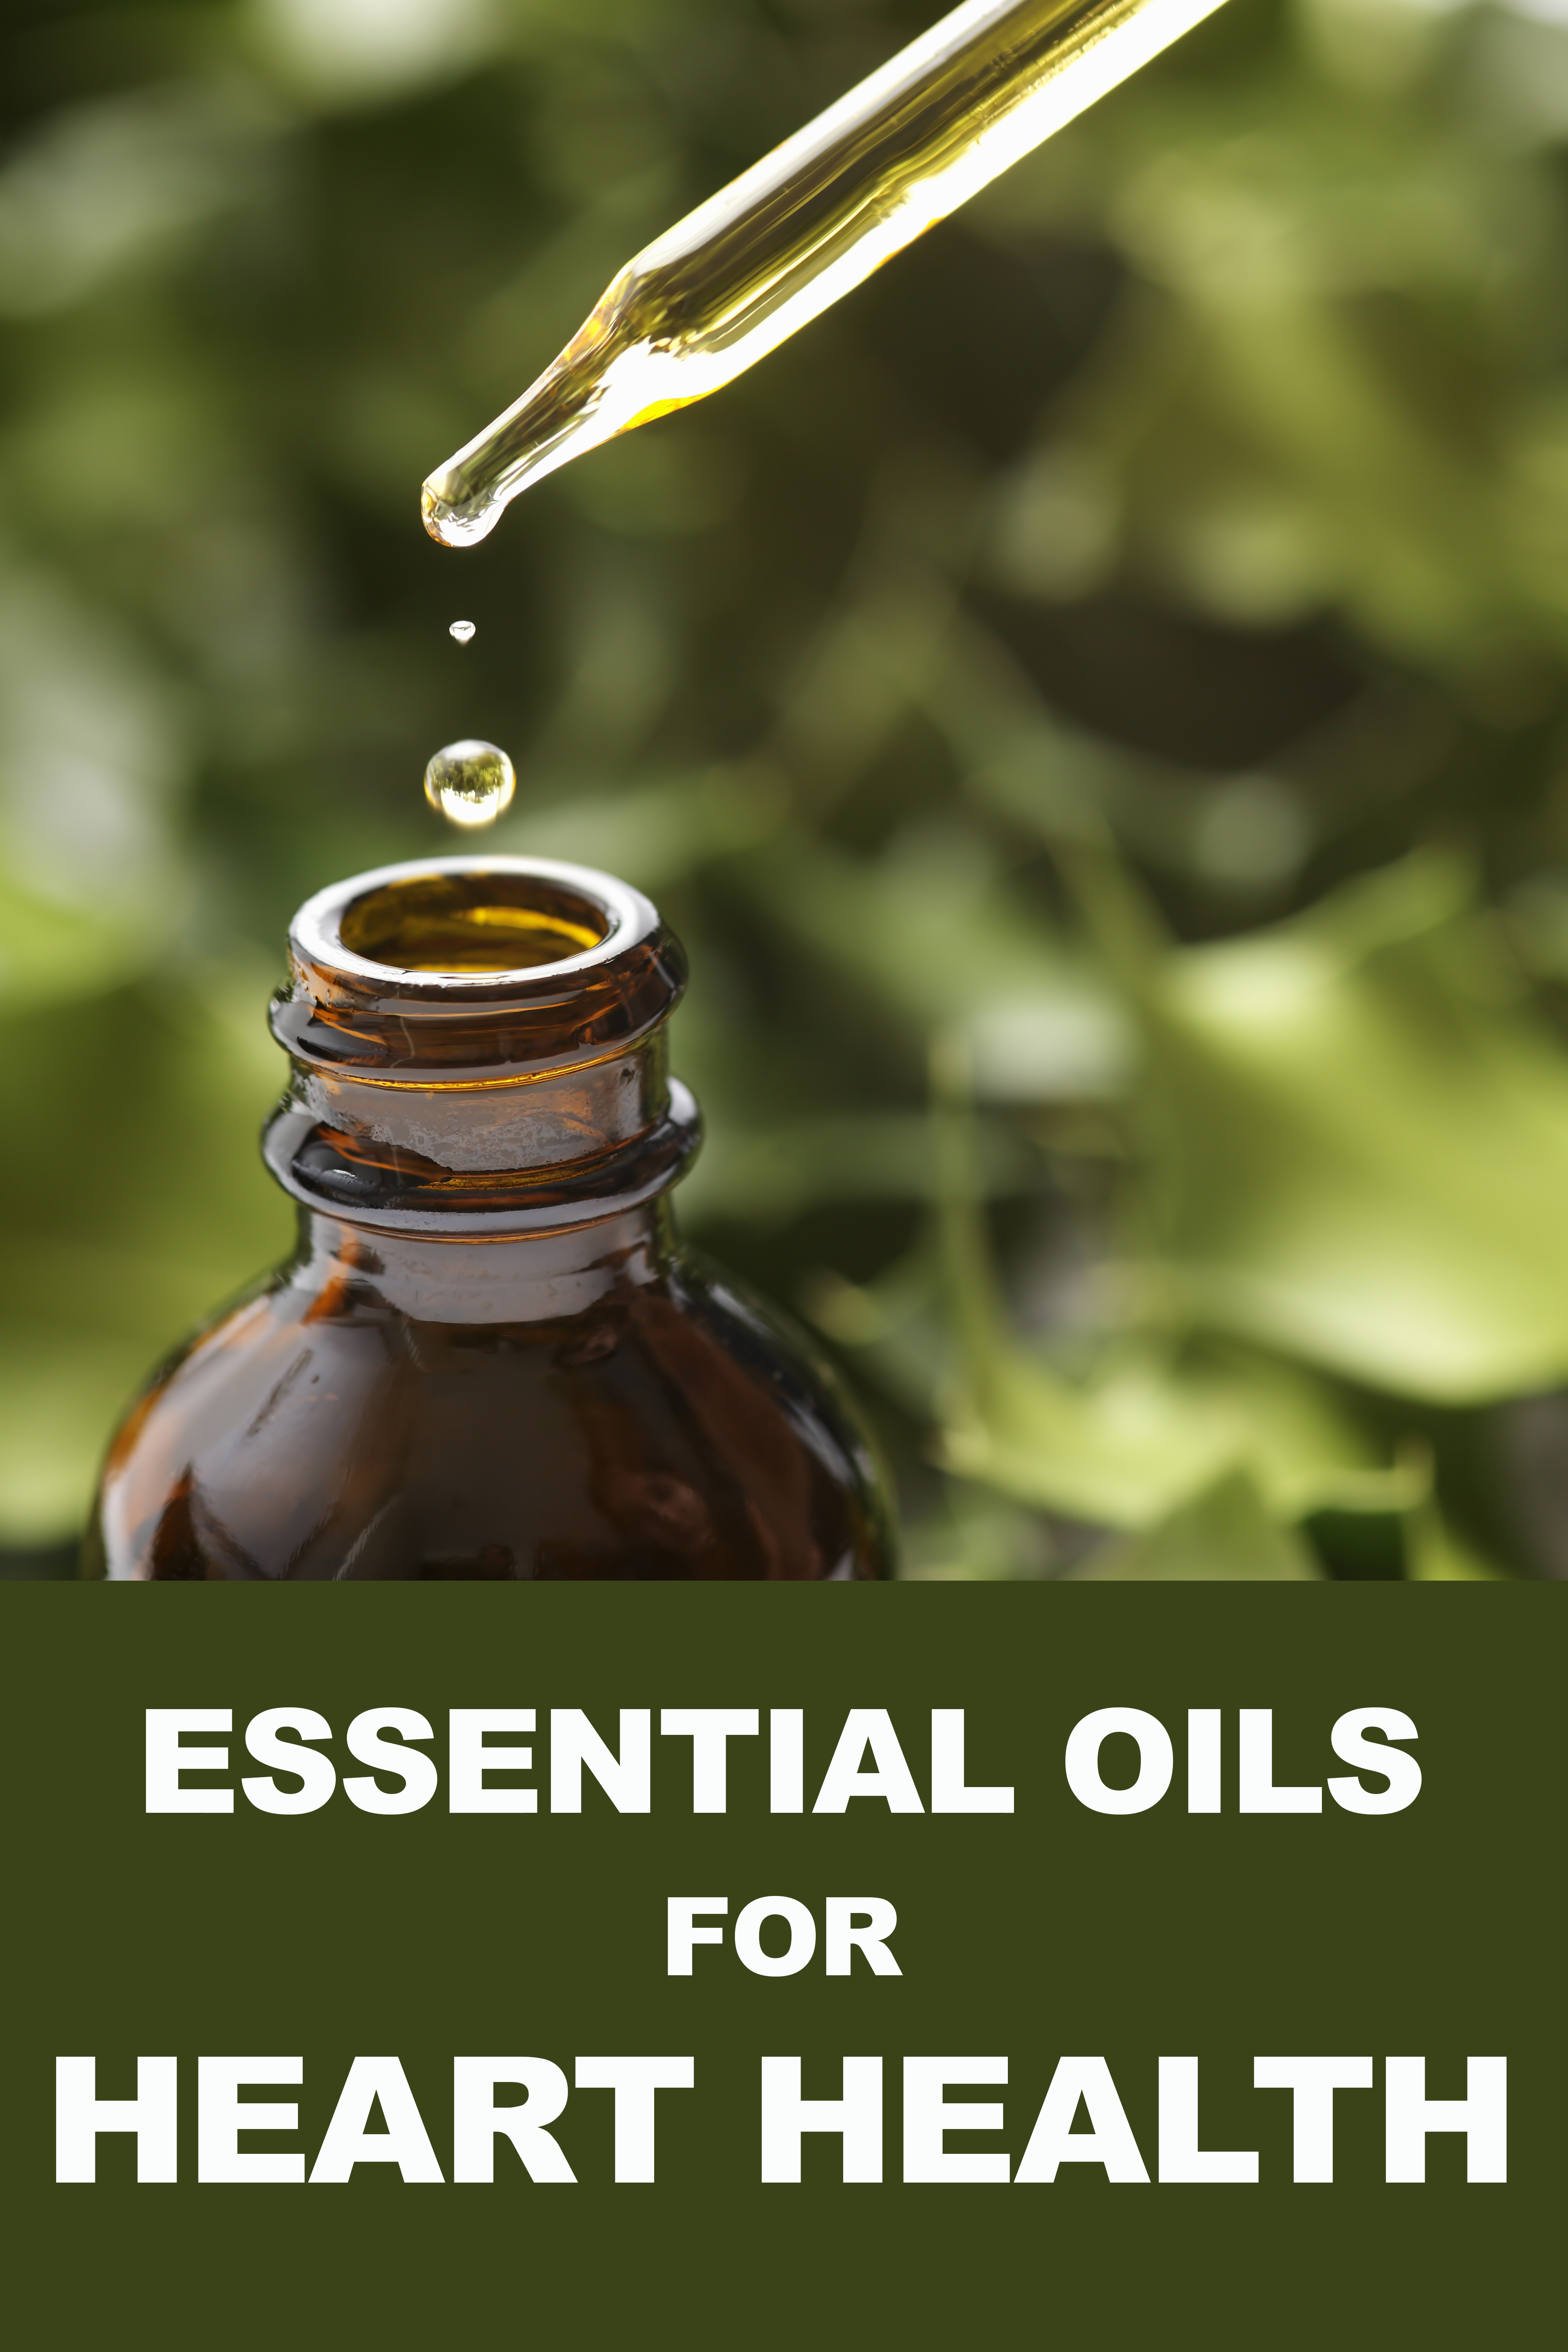 Are Essential Oils Good For Heart Health